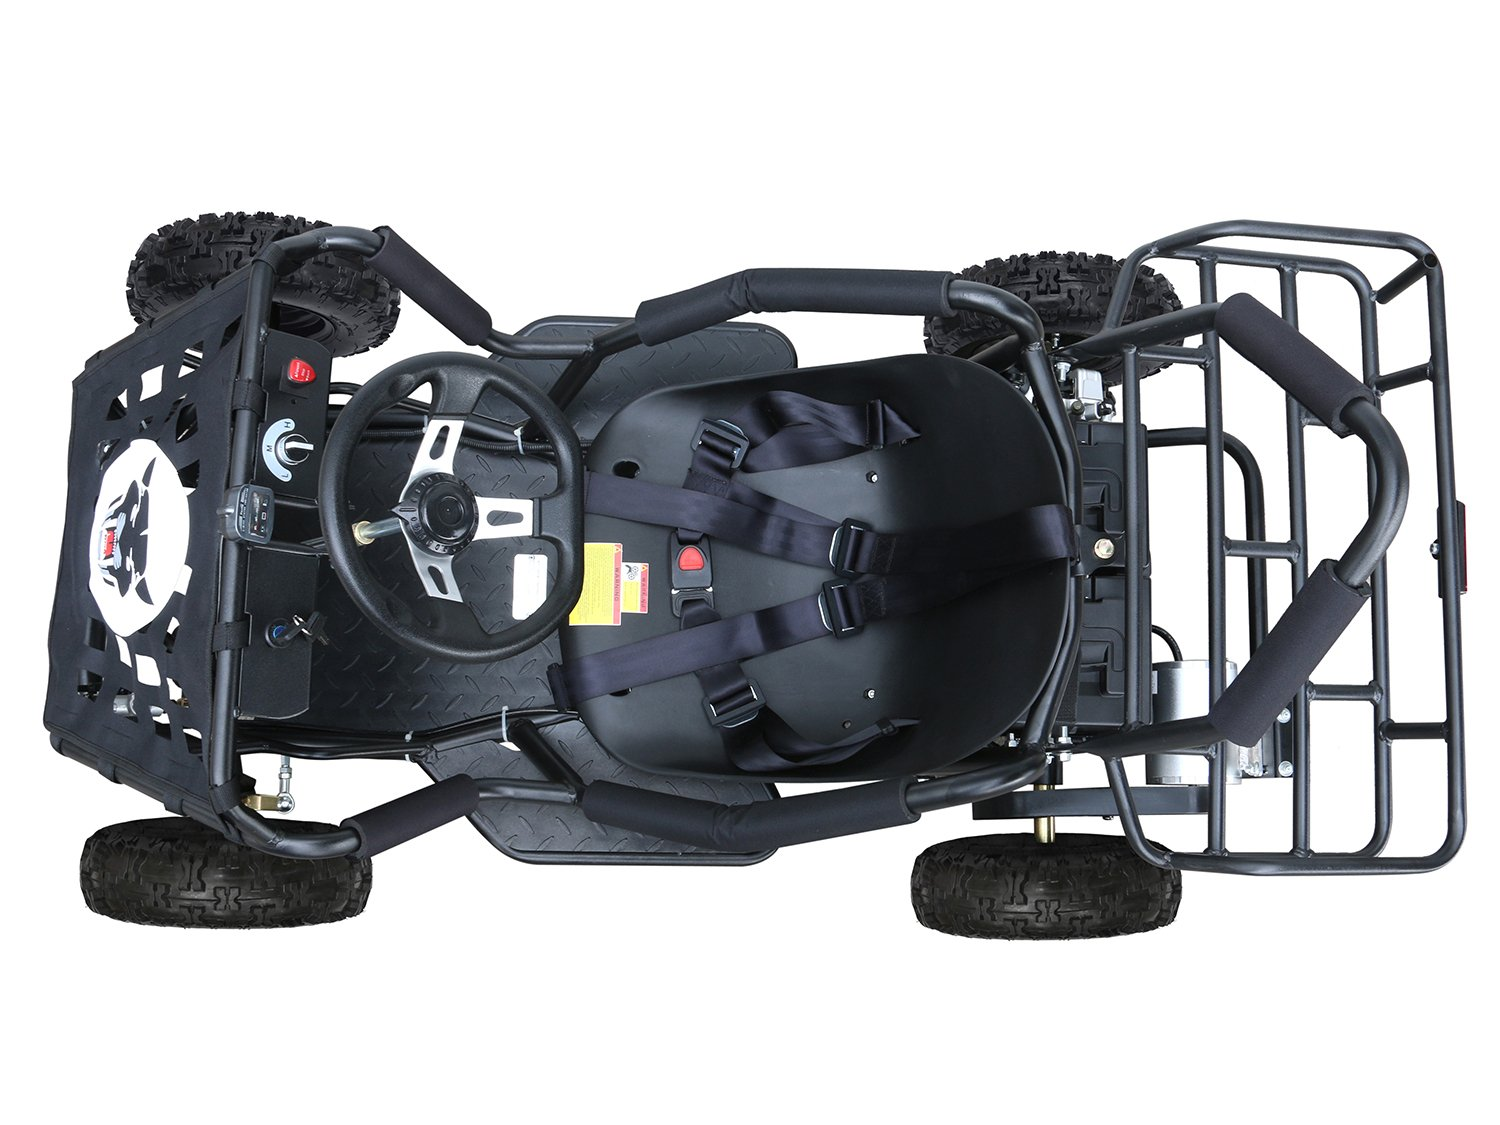 JCMOTO Electric Go Karts For Kids 4 Four Wheelers Off Road Tire 48v 1800w Black (Upgraded versions) by JCMOTO (Image #3)